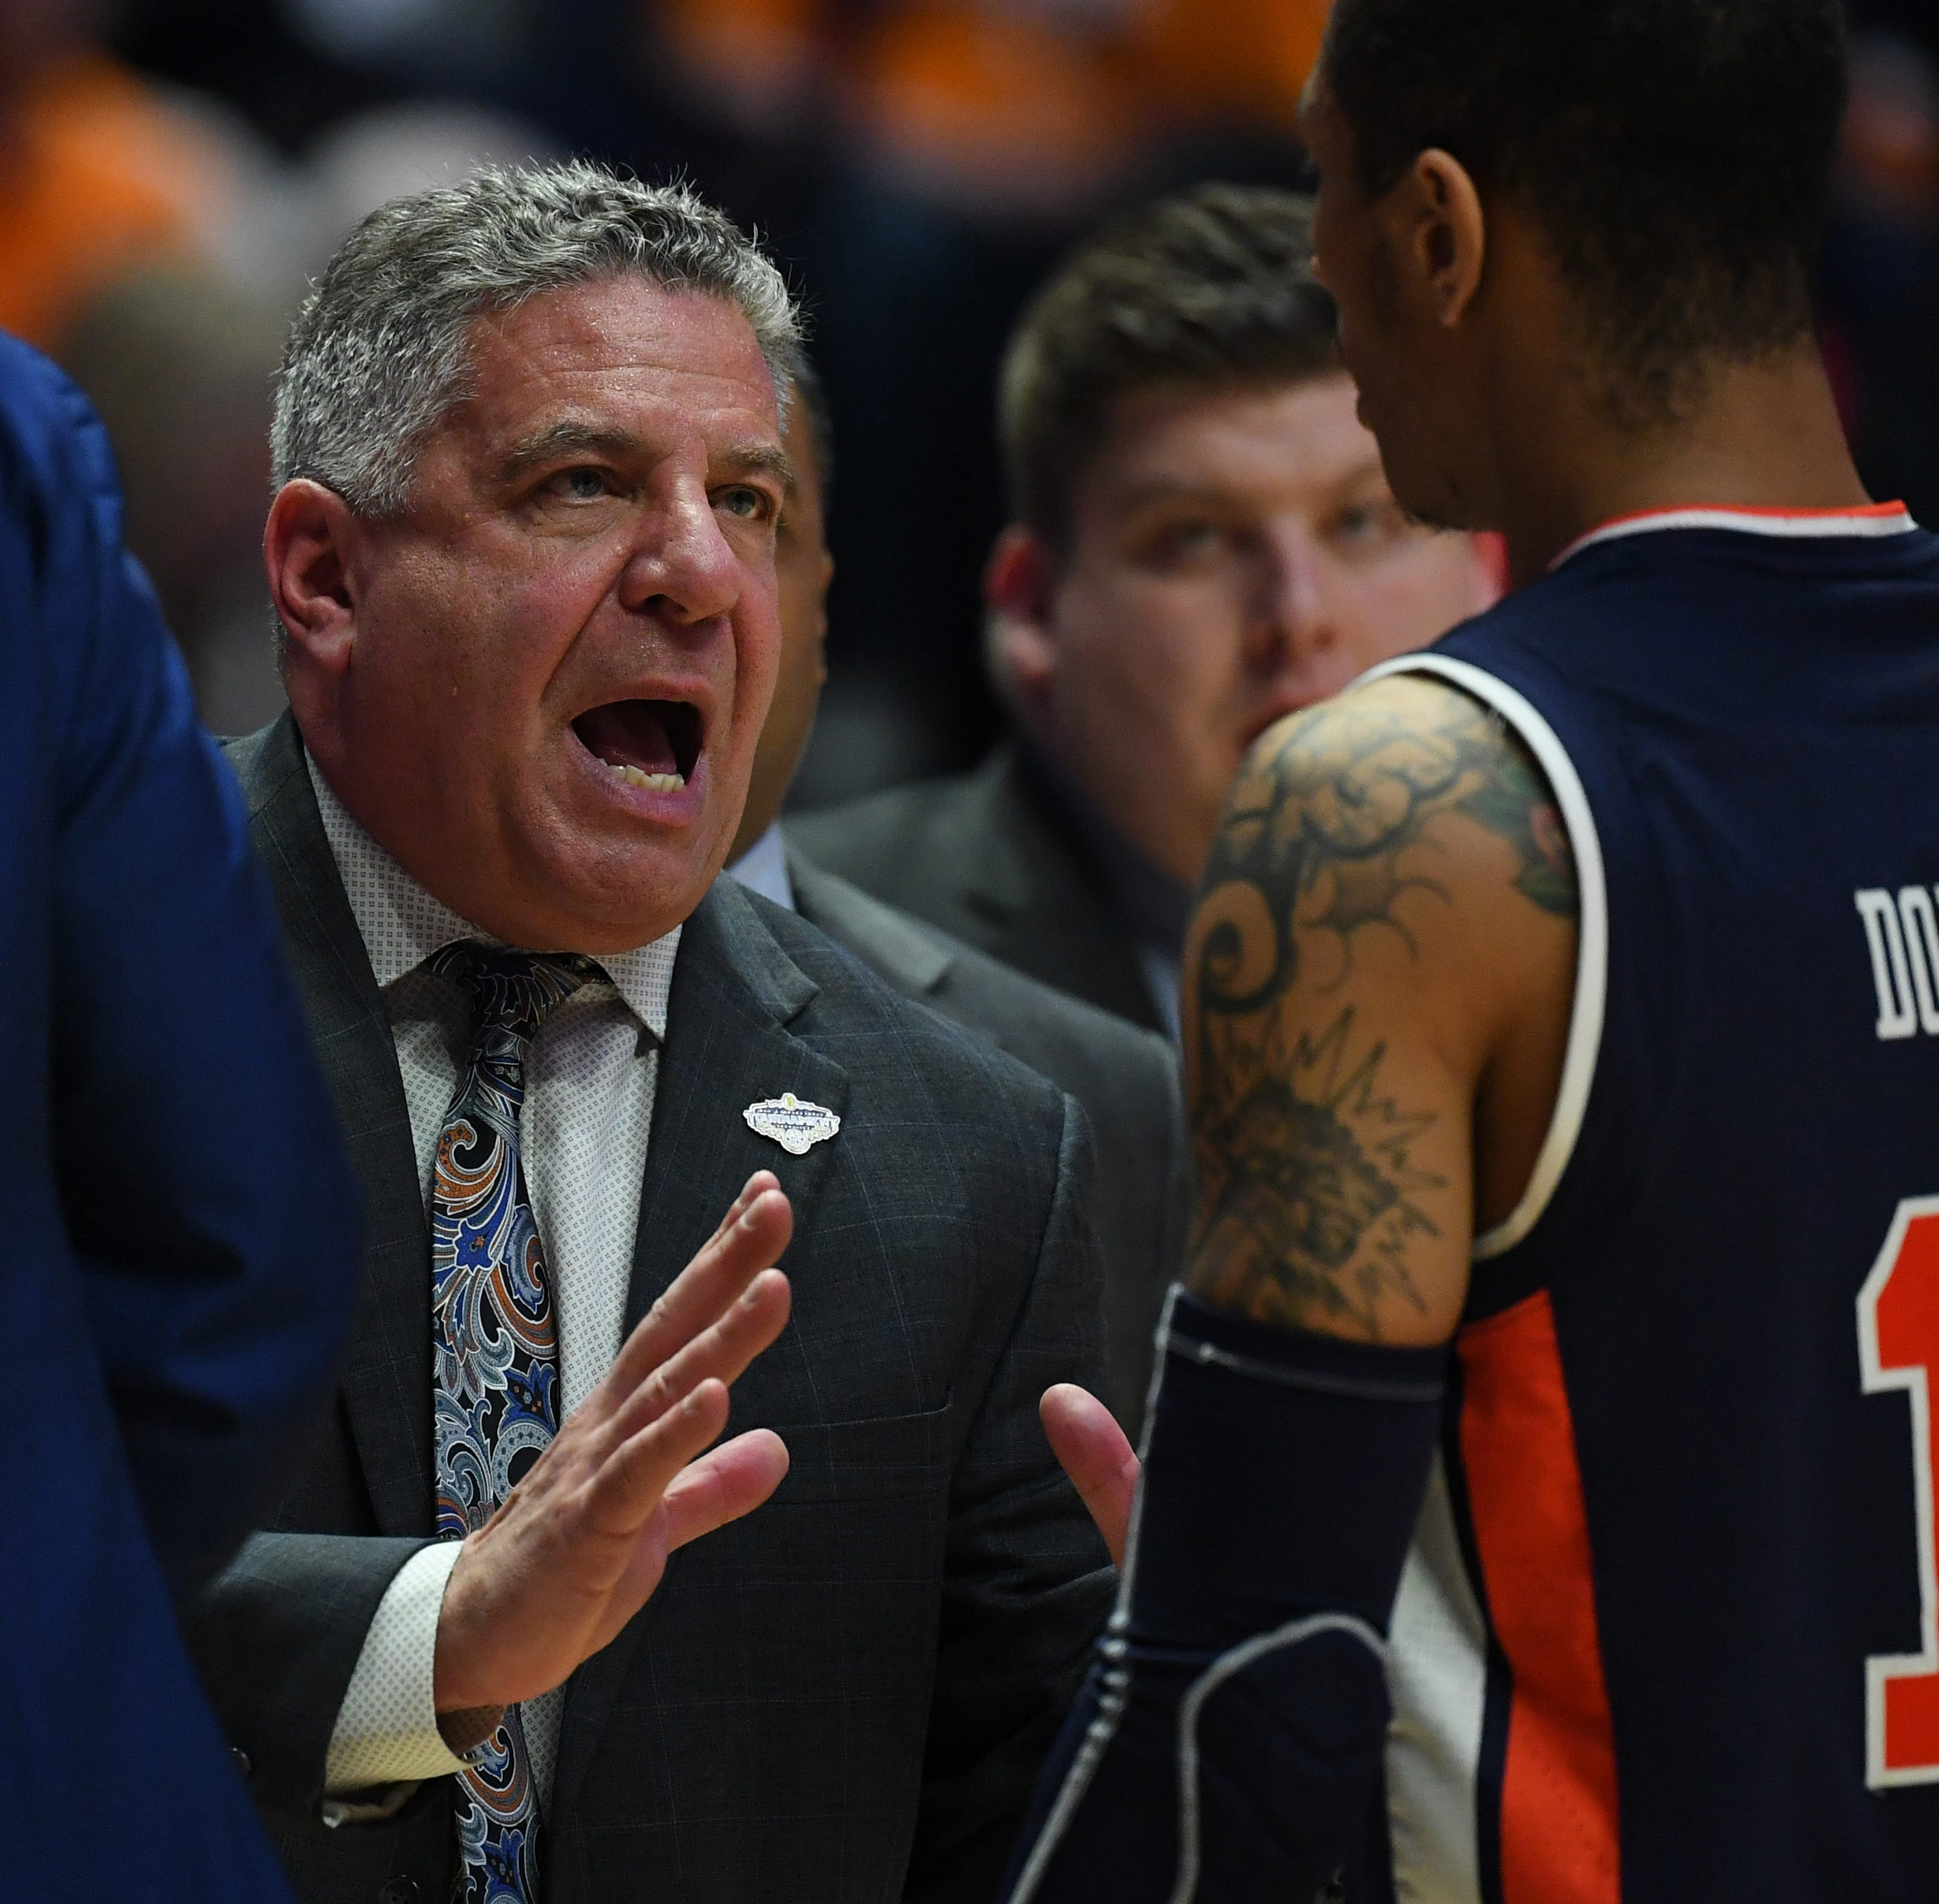 SEC Tournament 2019: Auburn fans react to victory in SEC Championship